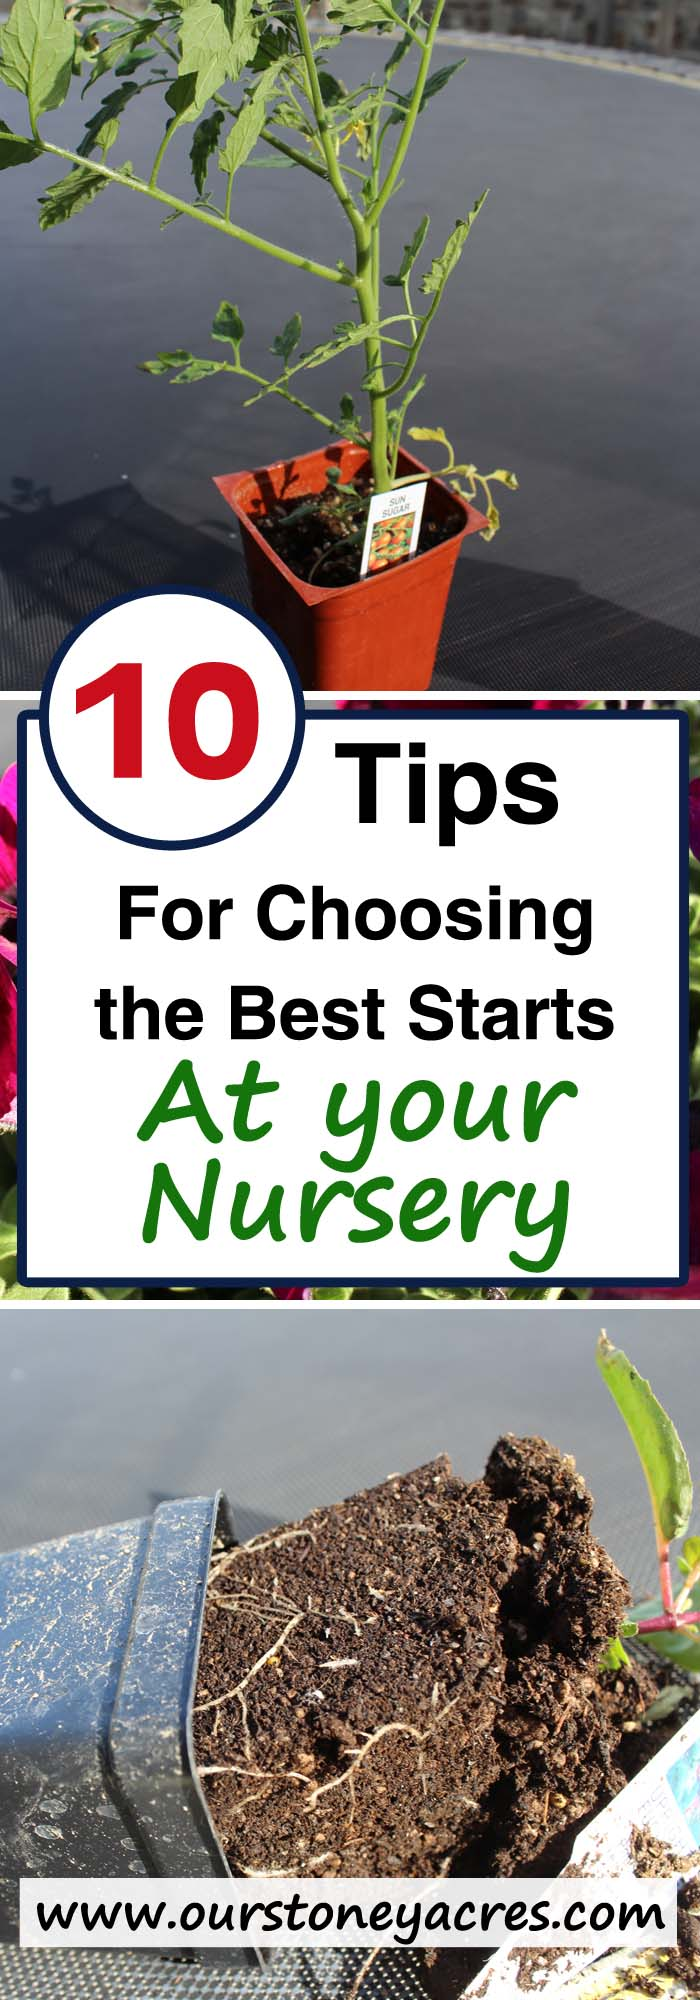 Choose the best plant starts